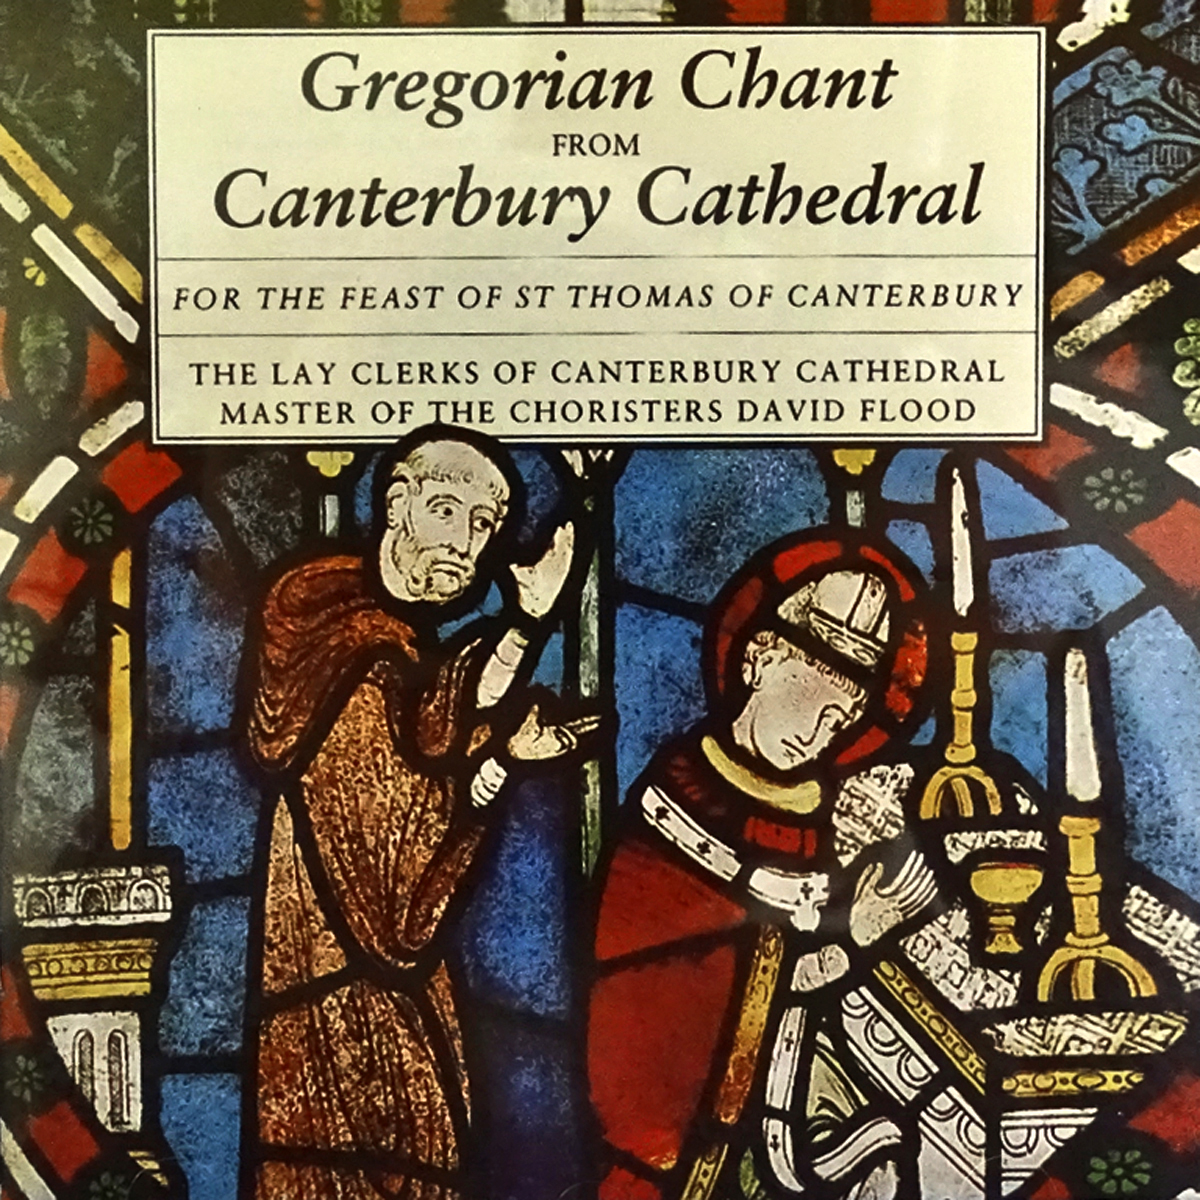 Canterbury Cathedral - Gregorian Chant from Canterbury Cathedral